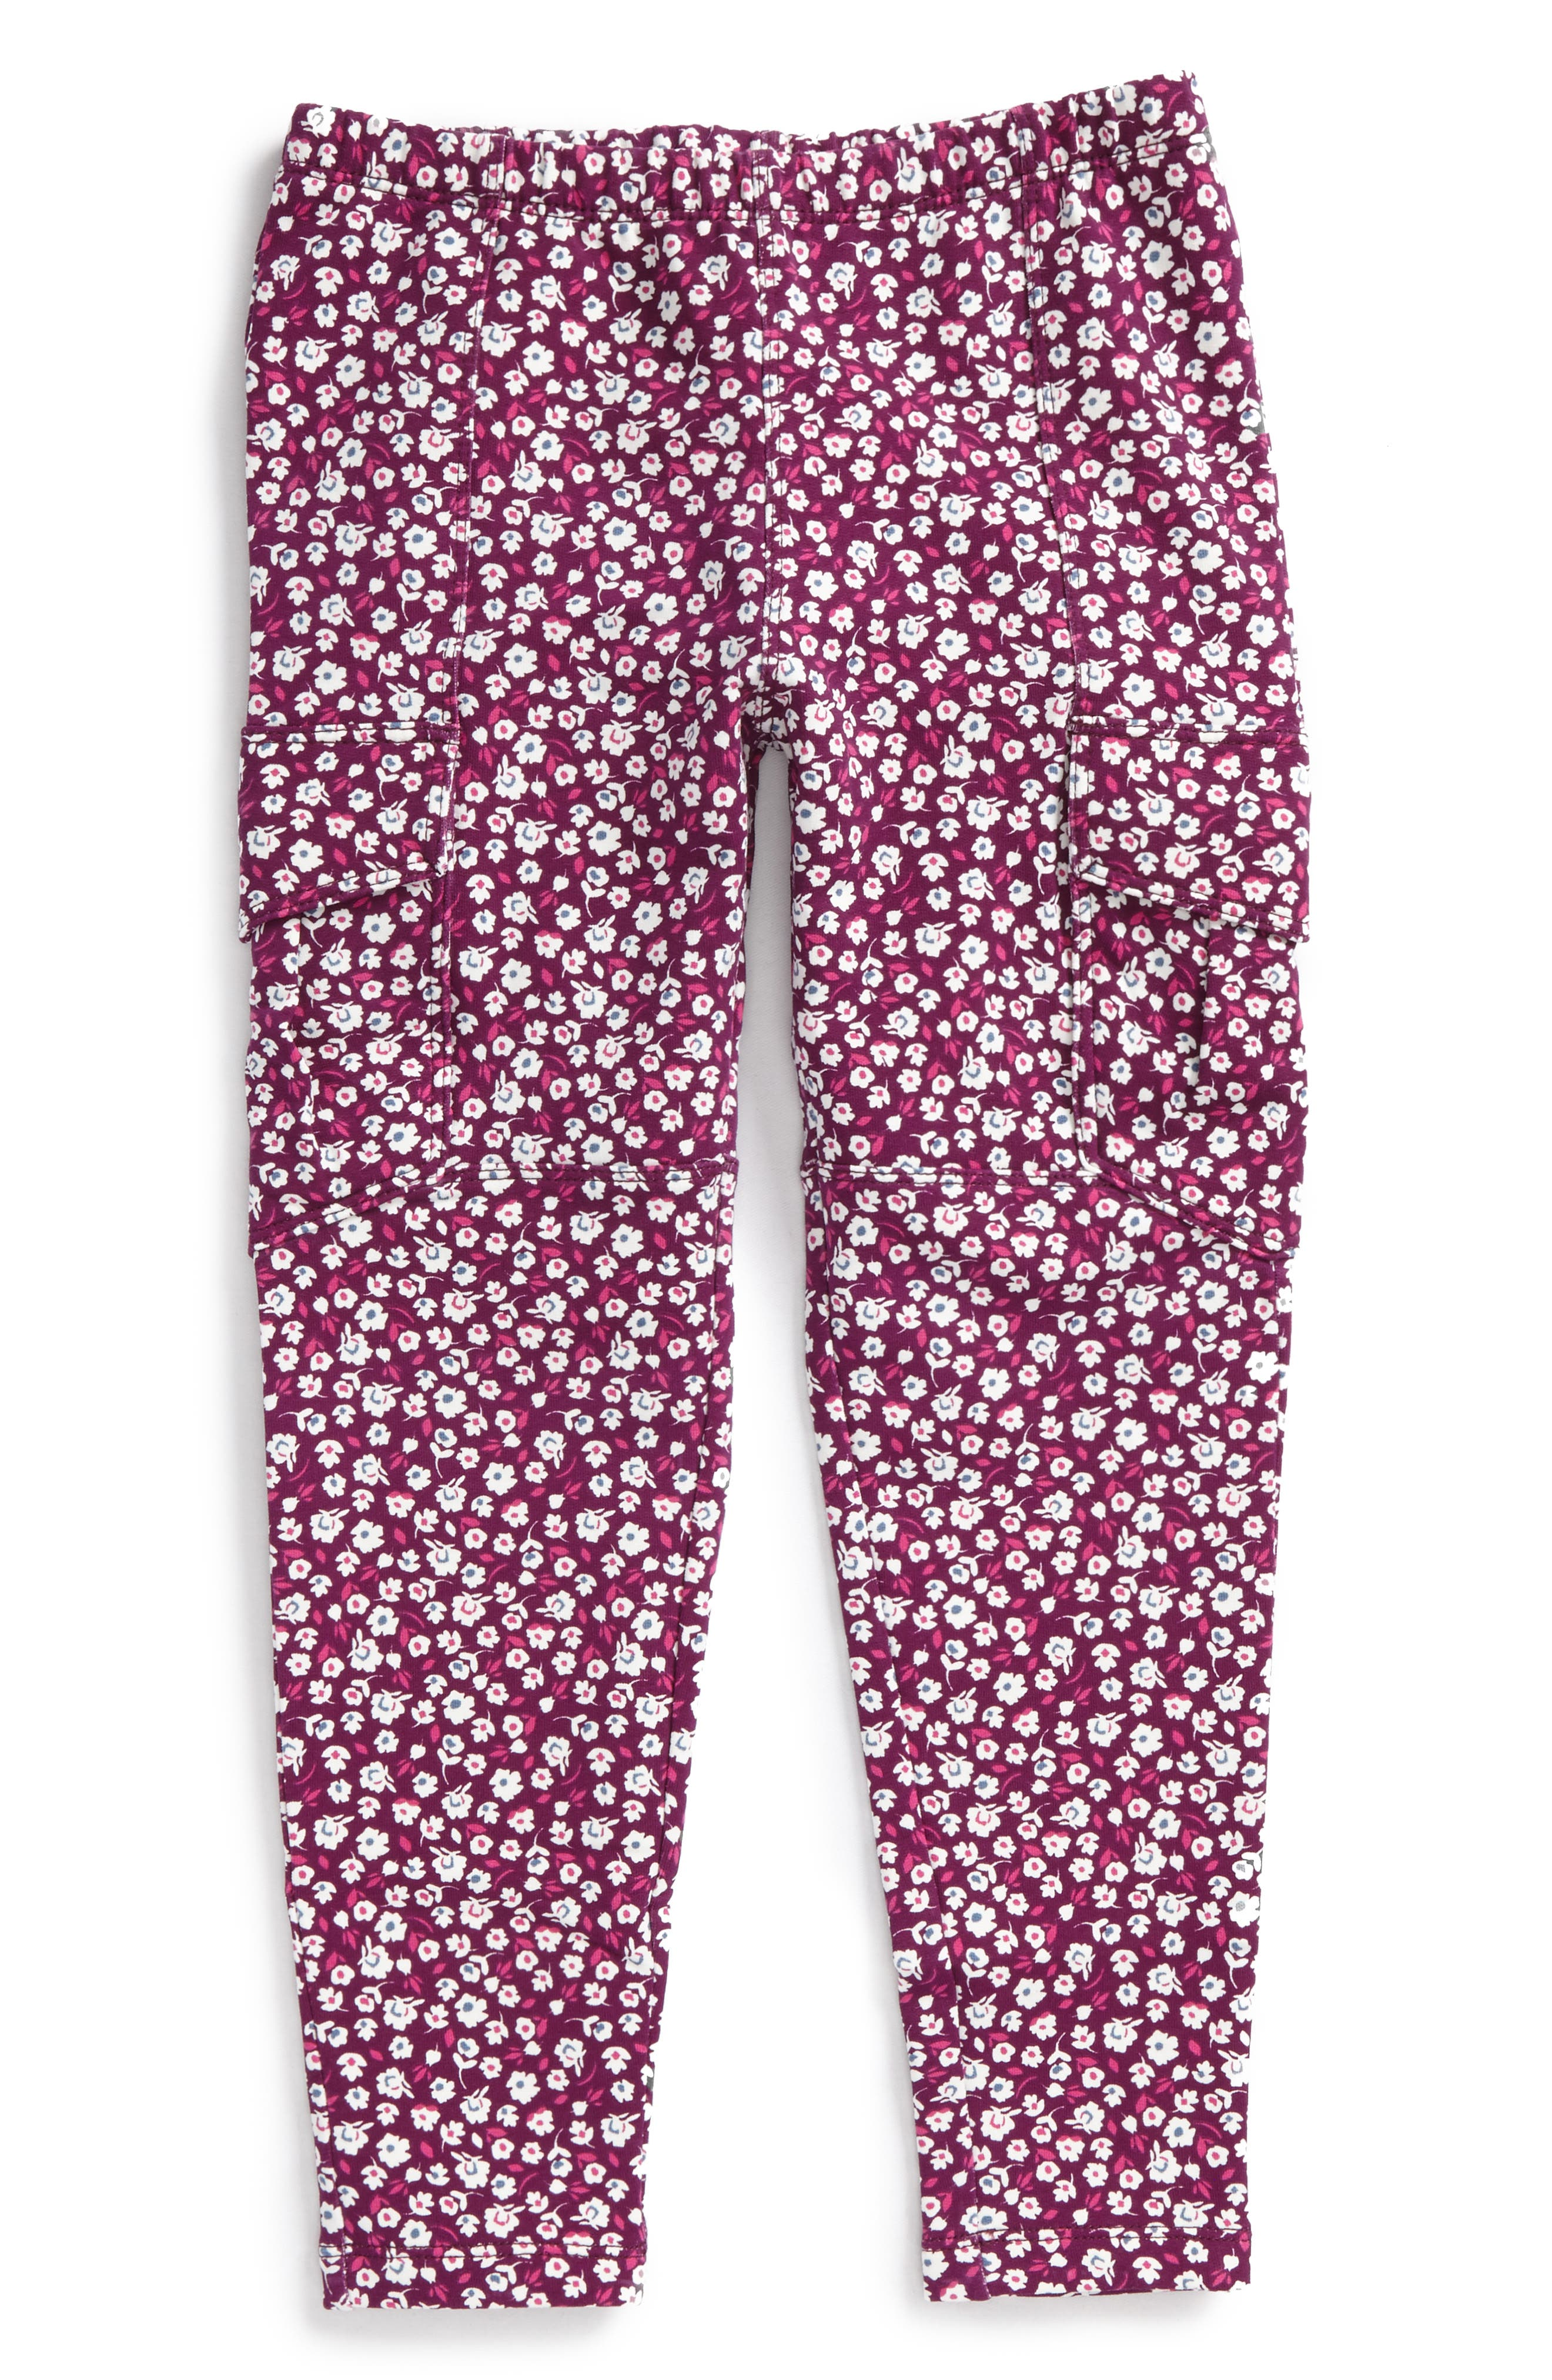 Alternate Image 1 Selected - Tea Collection Ditsy French Terry Cargo Pants (Toddler Girls, Little Girls & Big Girls)